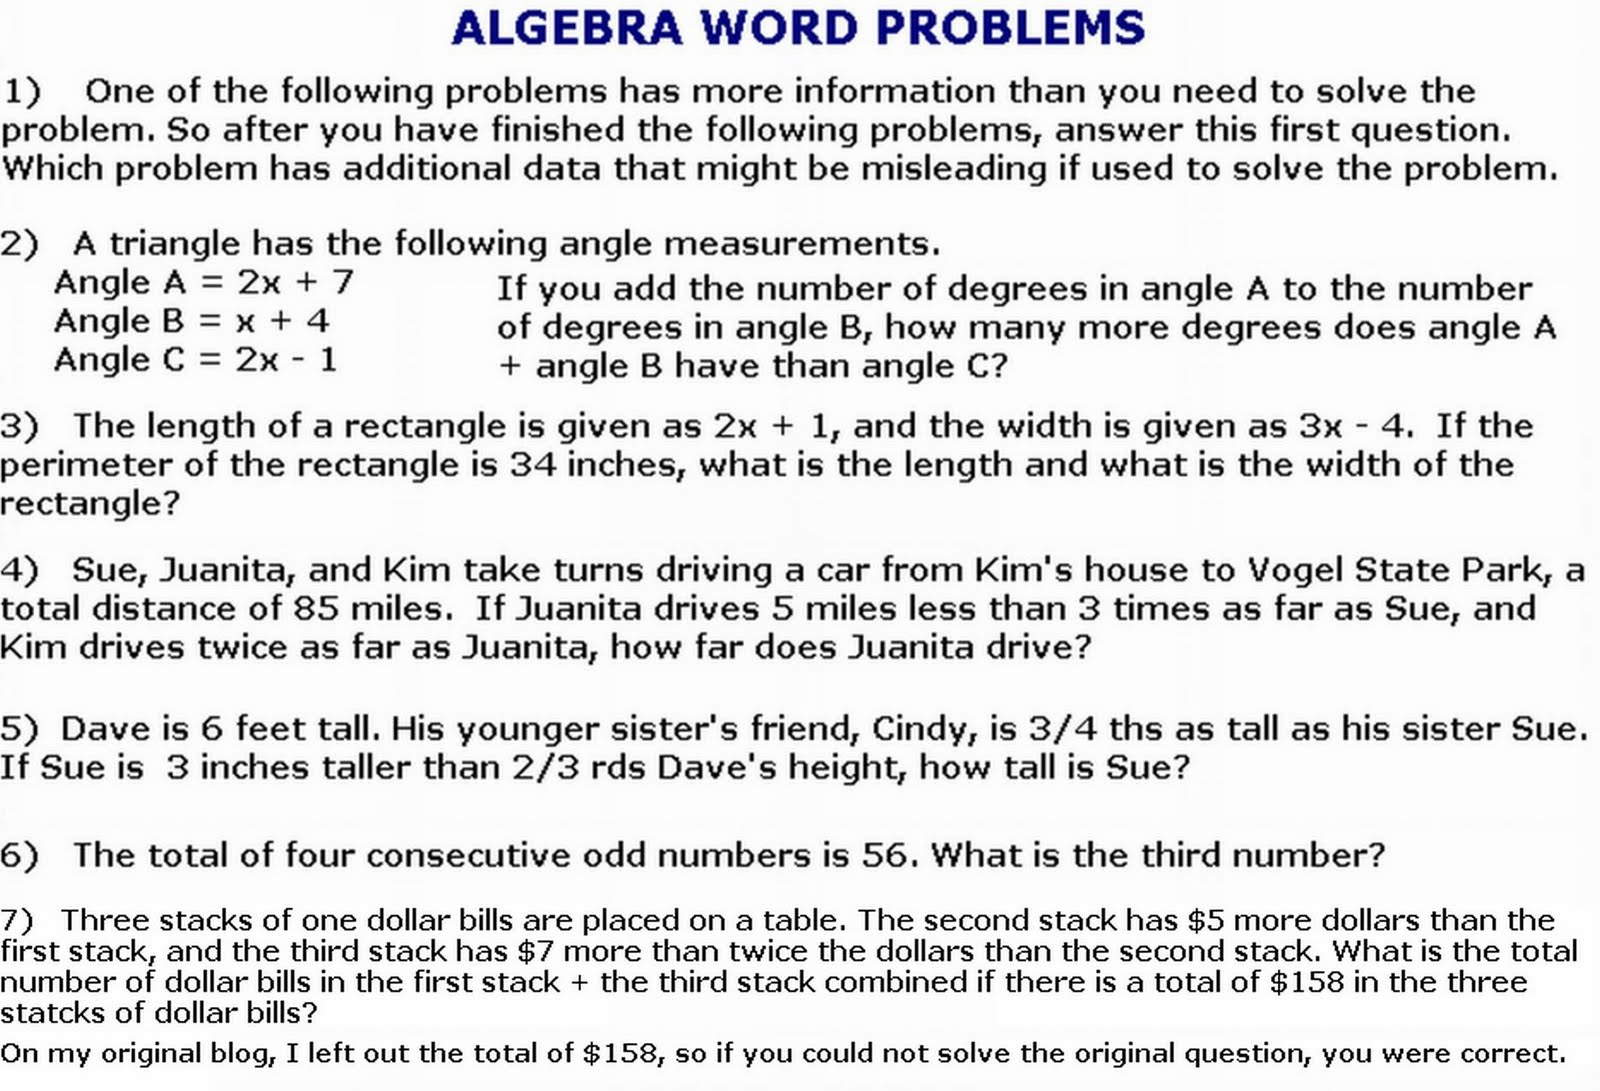 Printables Algebra Word Problems Worksheets easter word problems ks2 math activities printable worksheets algebra 1 problems